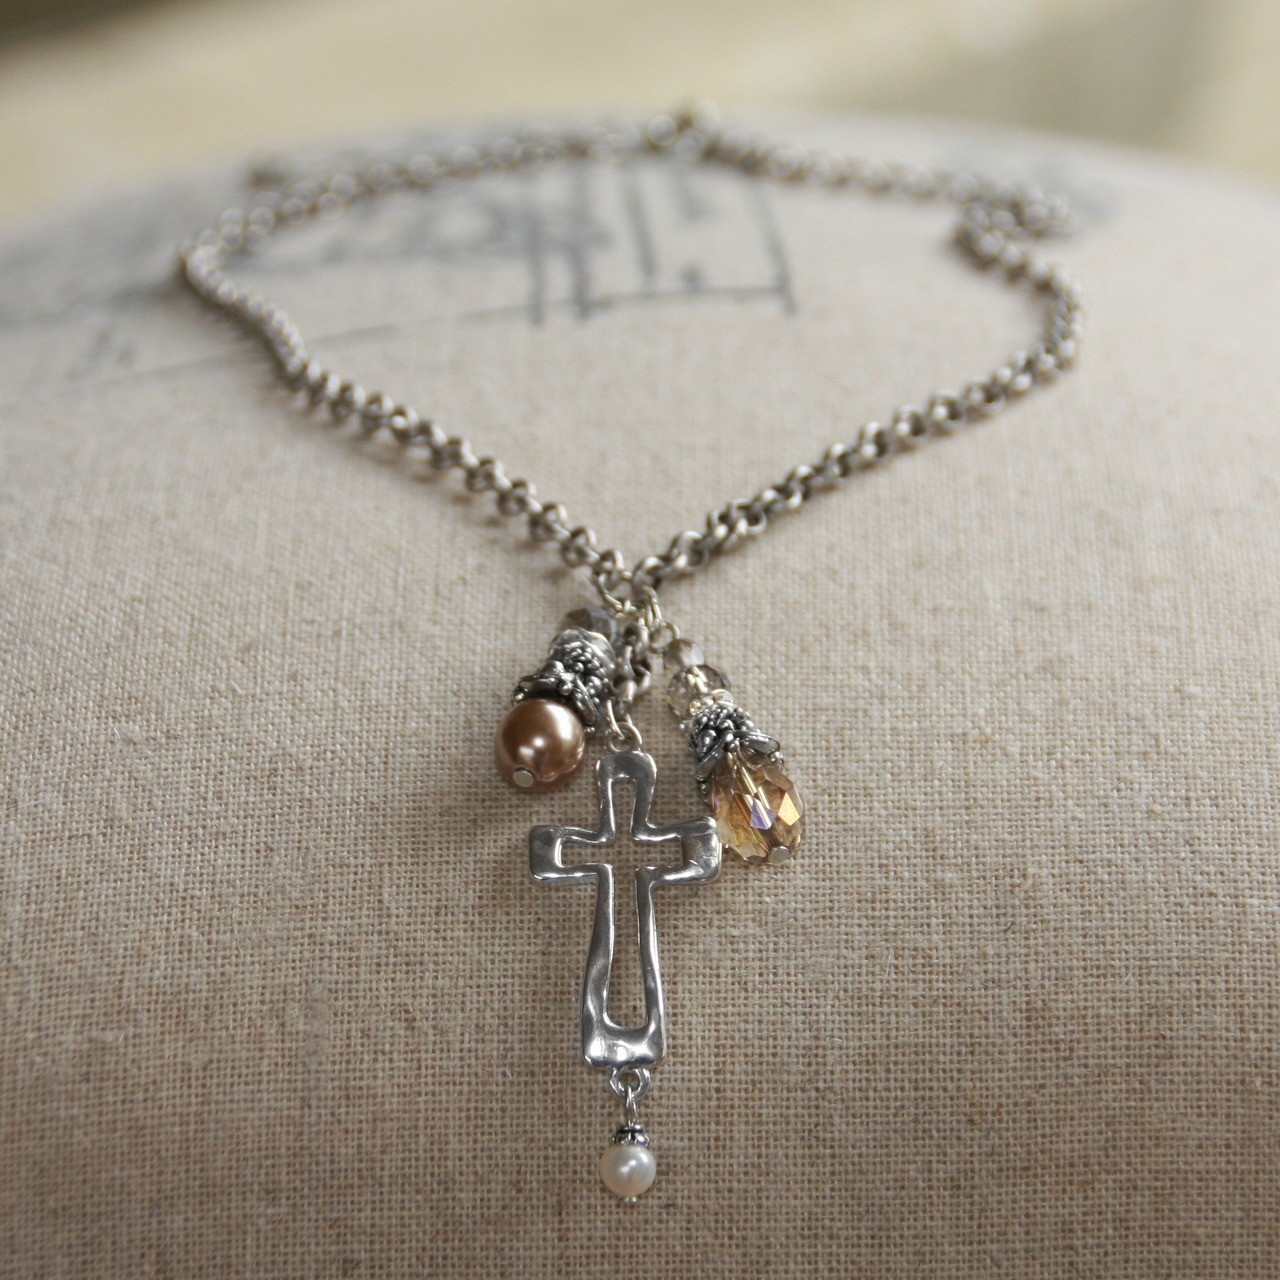 Cross Dangle Necklace necklace, jewelry, cross necklace, religious necklace, crystal necklace,In-519